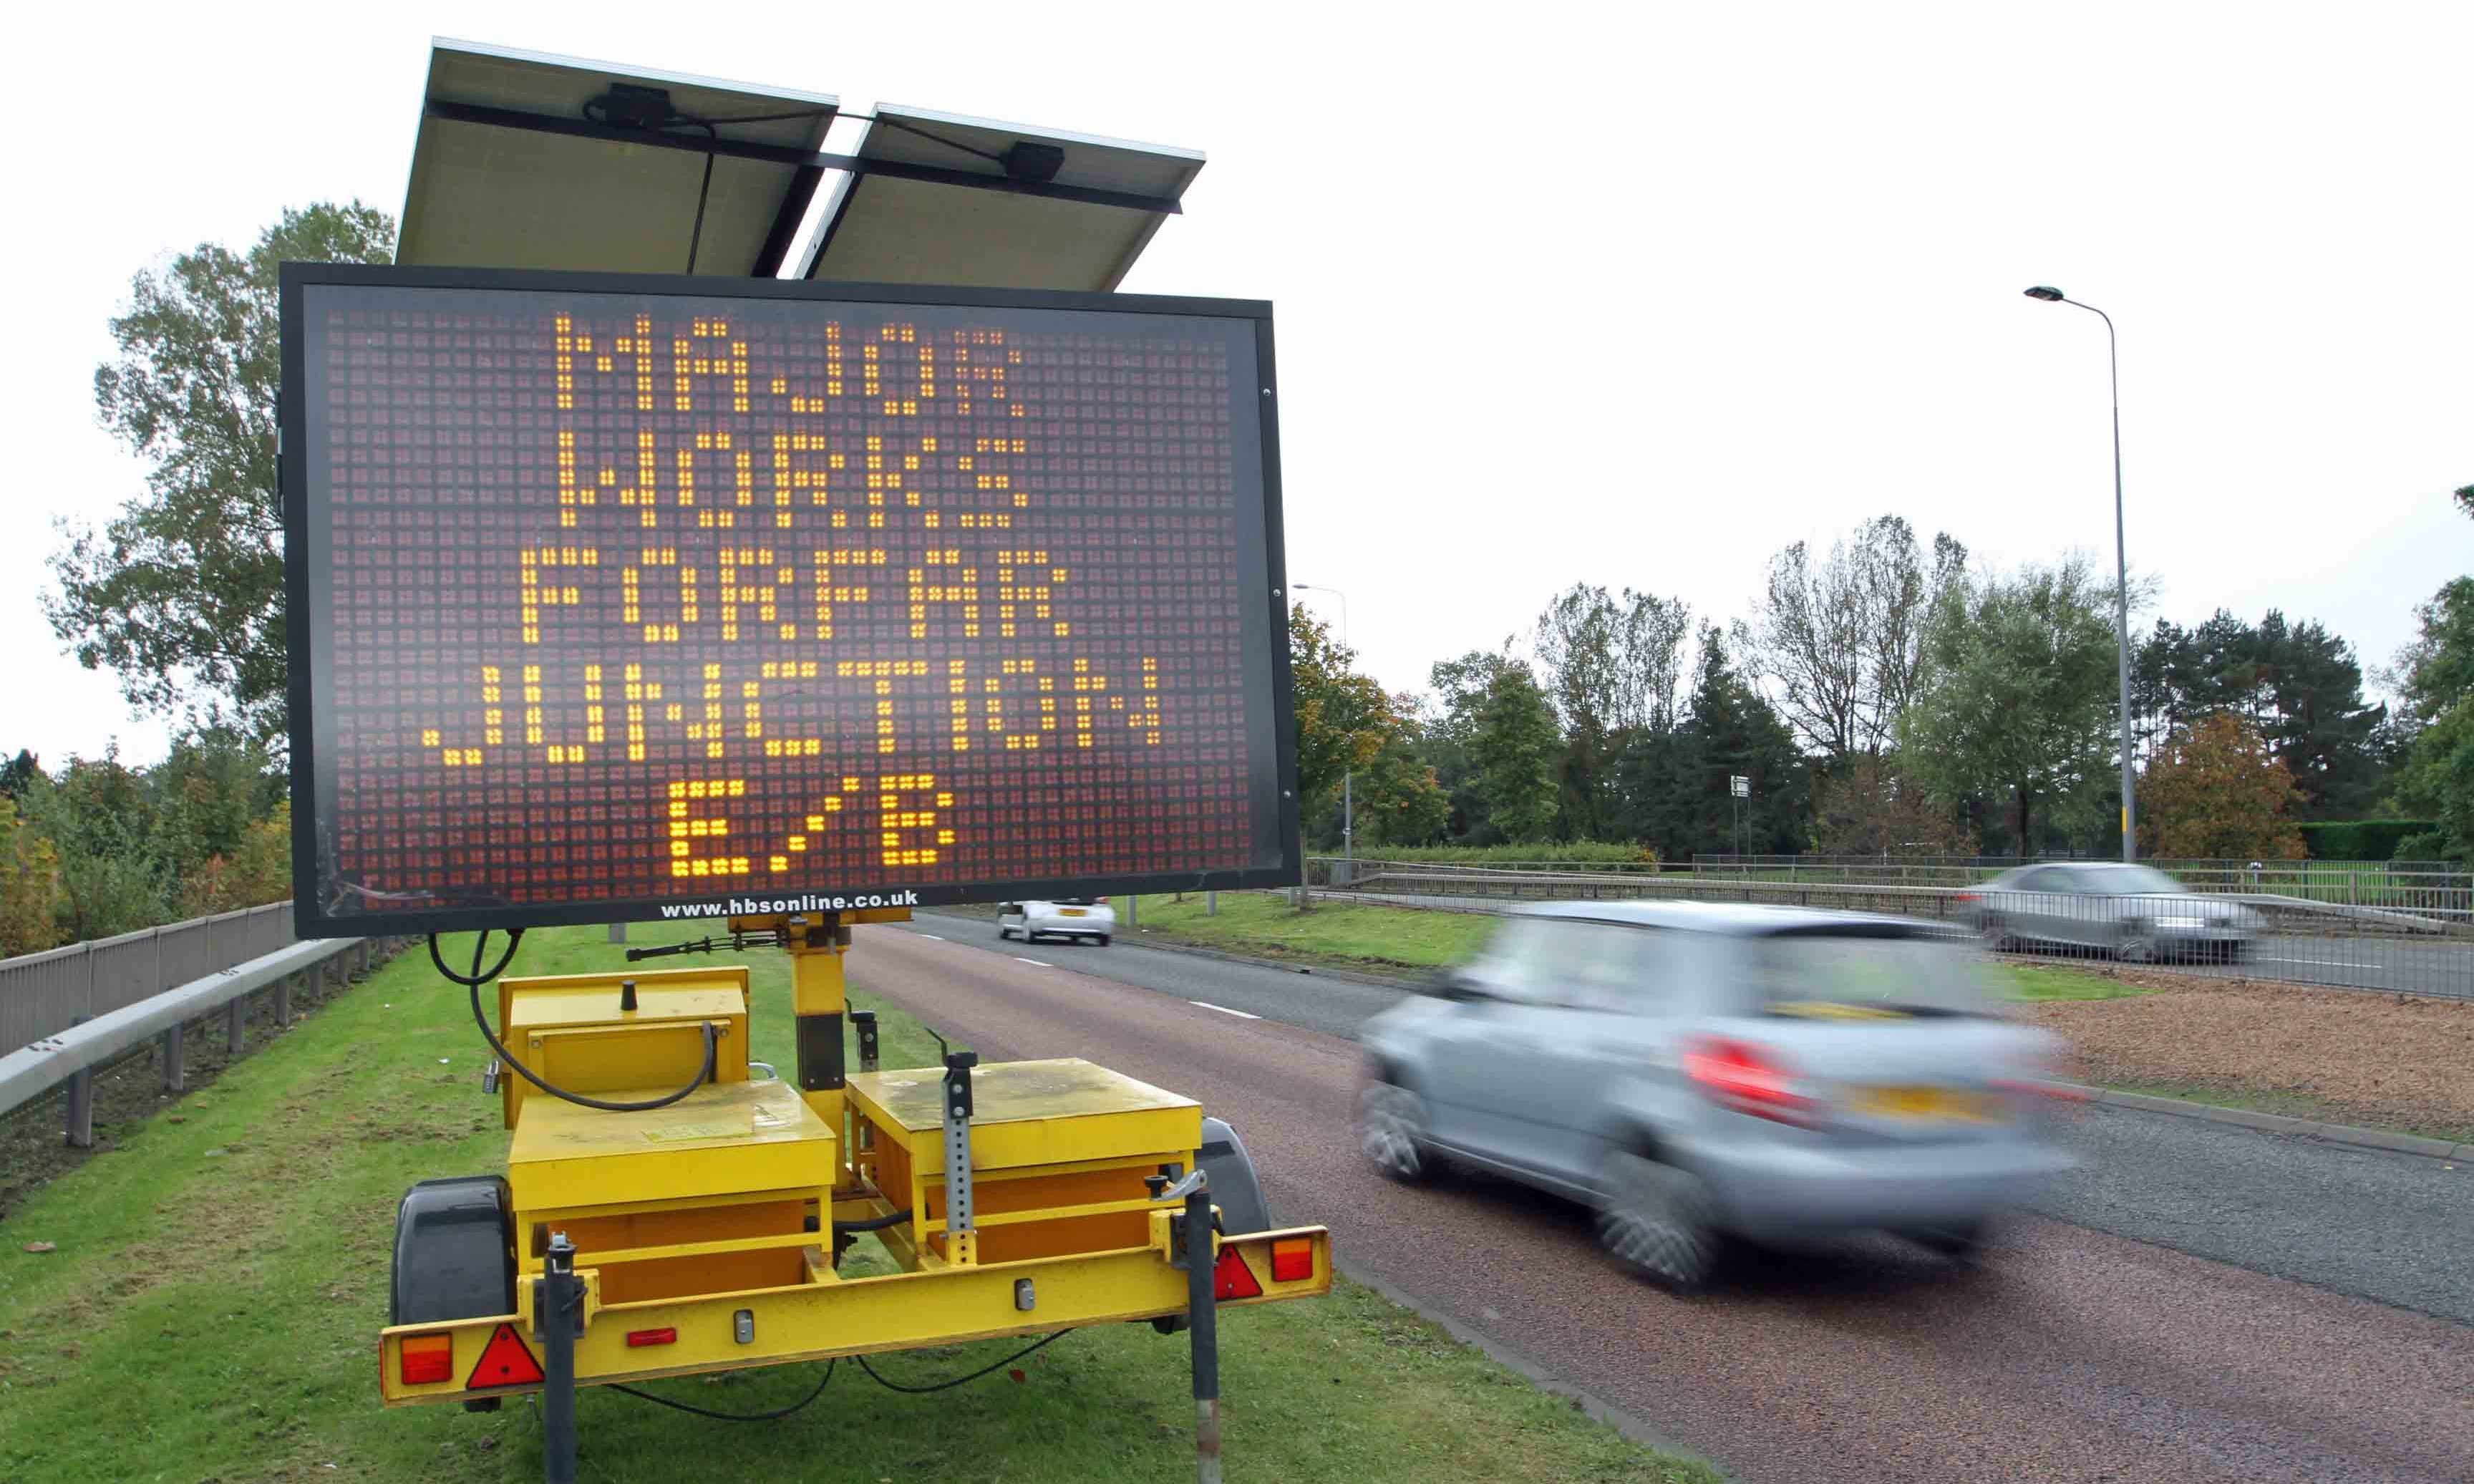 Major roadworks are due to take place on Kingsway East.